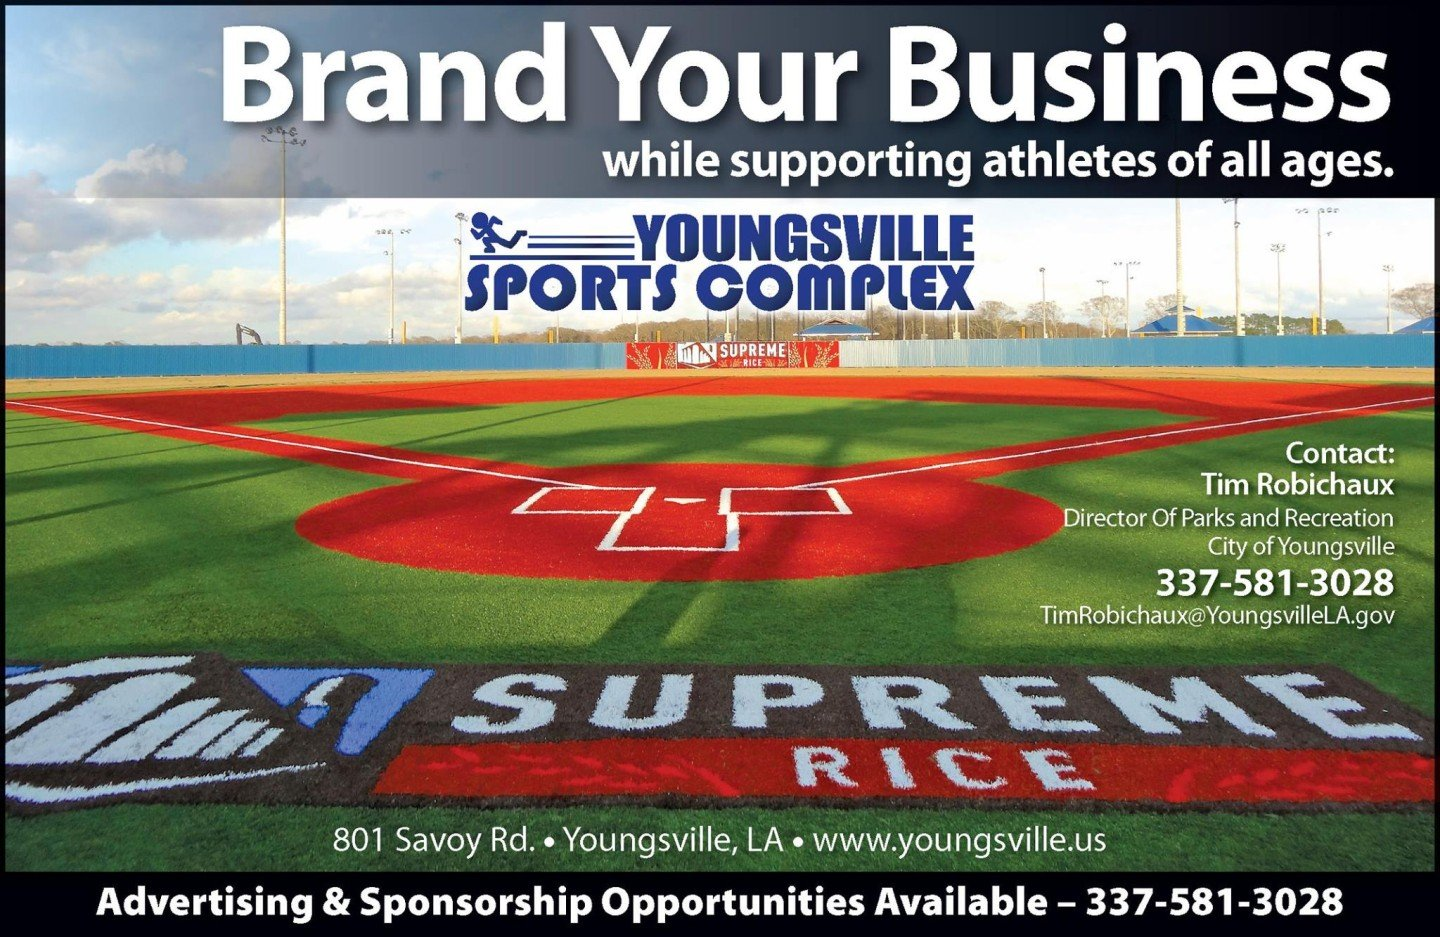 Sports Complex Marketing and Advertising